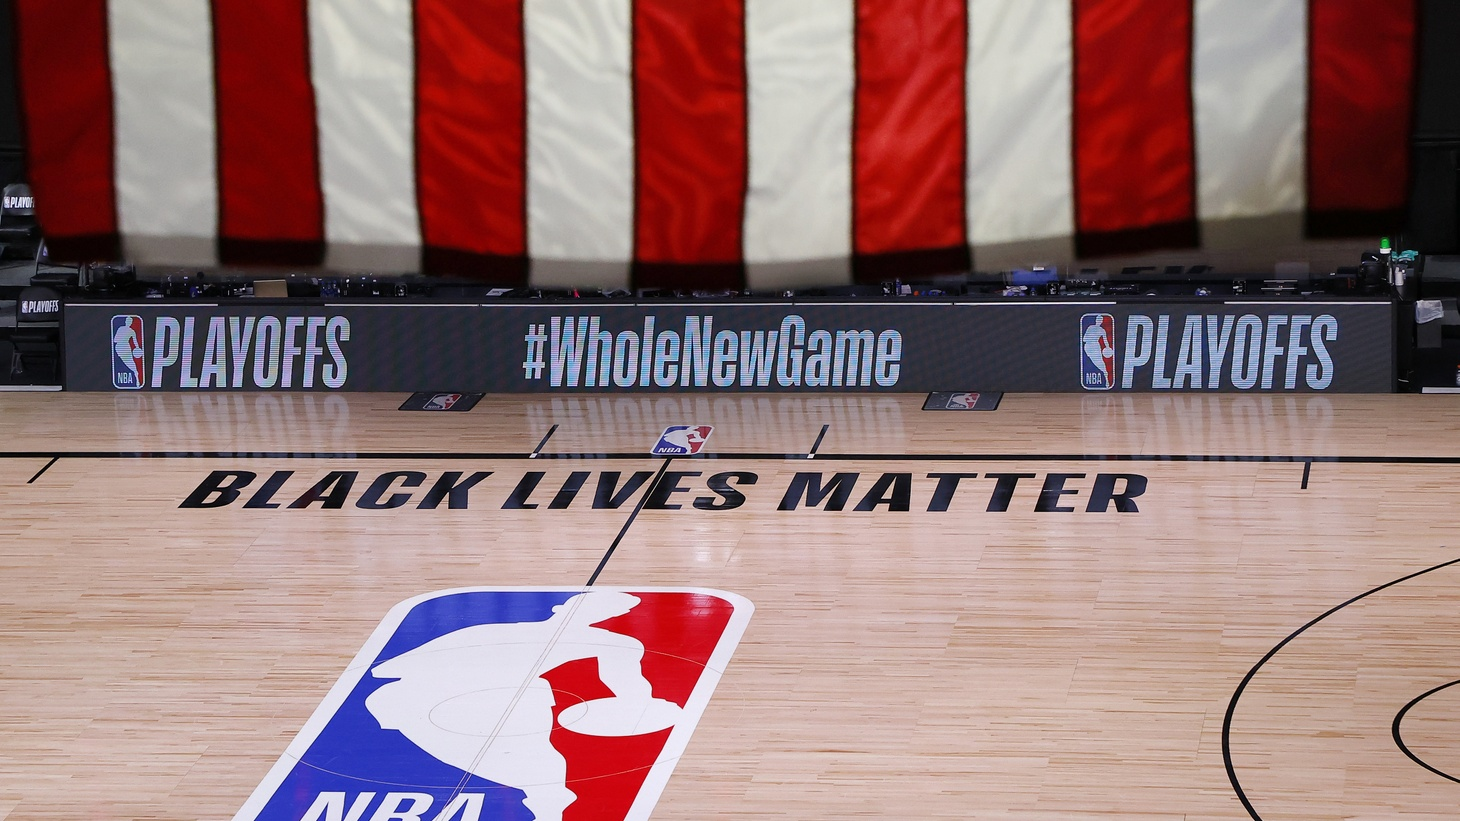 An empty court and bench is shown following the scheduled start time in game five of the Eastern Conference First Round between the Milwaukee Bucks and the Orlando Magic during the 2020 NBA Playoffs at AdventHealth Arena at ESPN Wide World Of Sports Complex on August 26, 2020 in Lake Buena Vista, Florida. The Milwaukee Buck have boycotted game five reportedly to protest the shooting of Jacob Blake in Kenosha, Wisconsin.